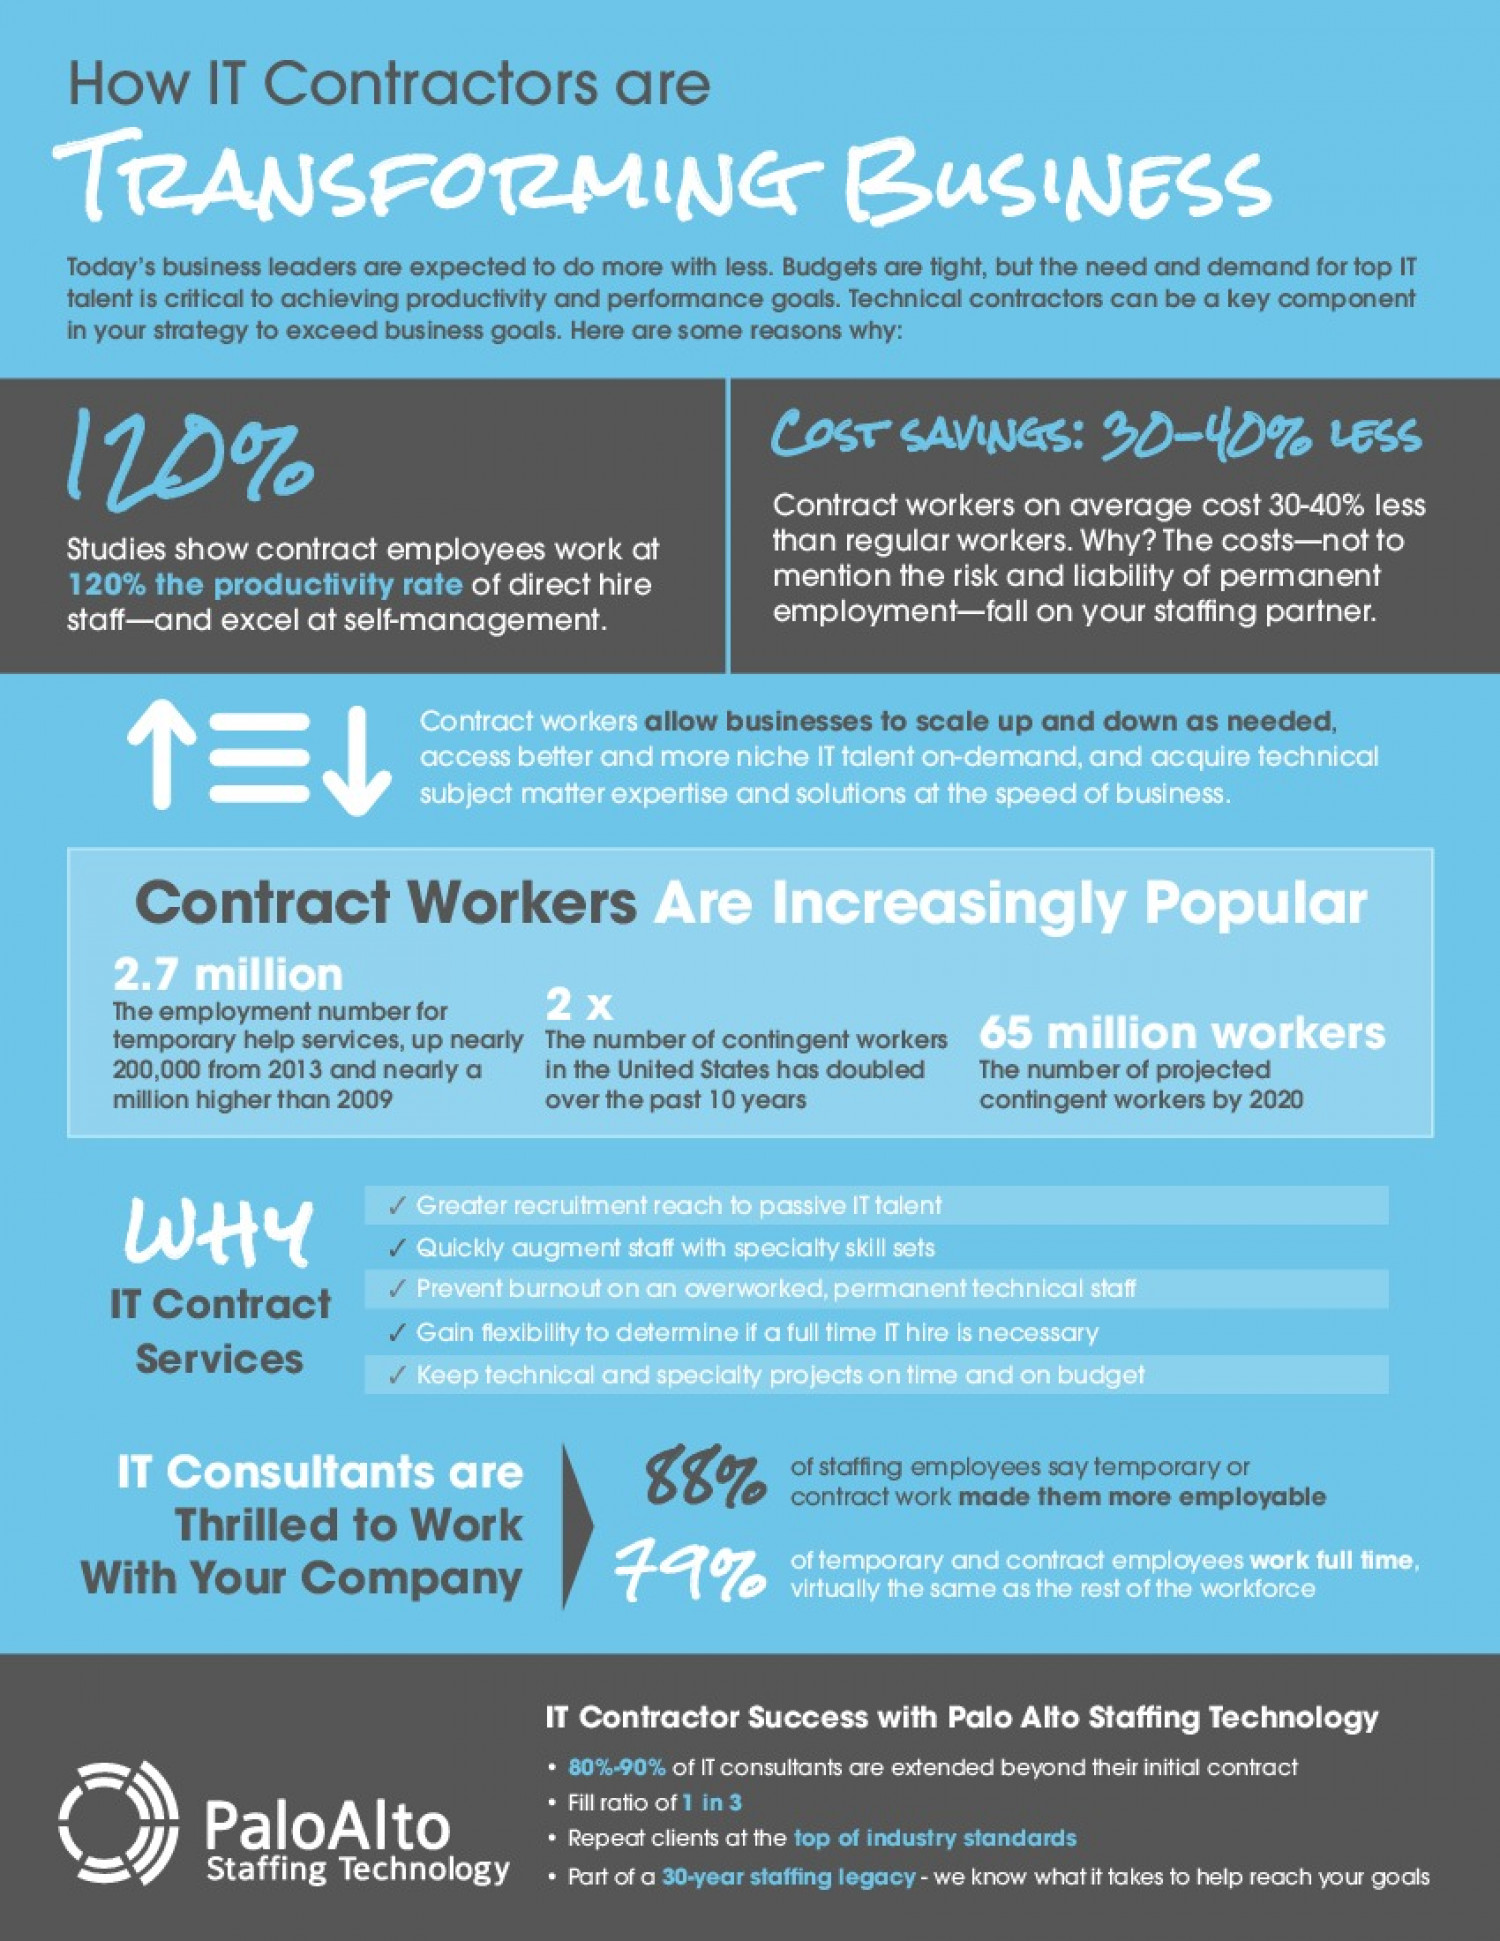 How IT Contractors are Transforming Business Infographic